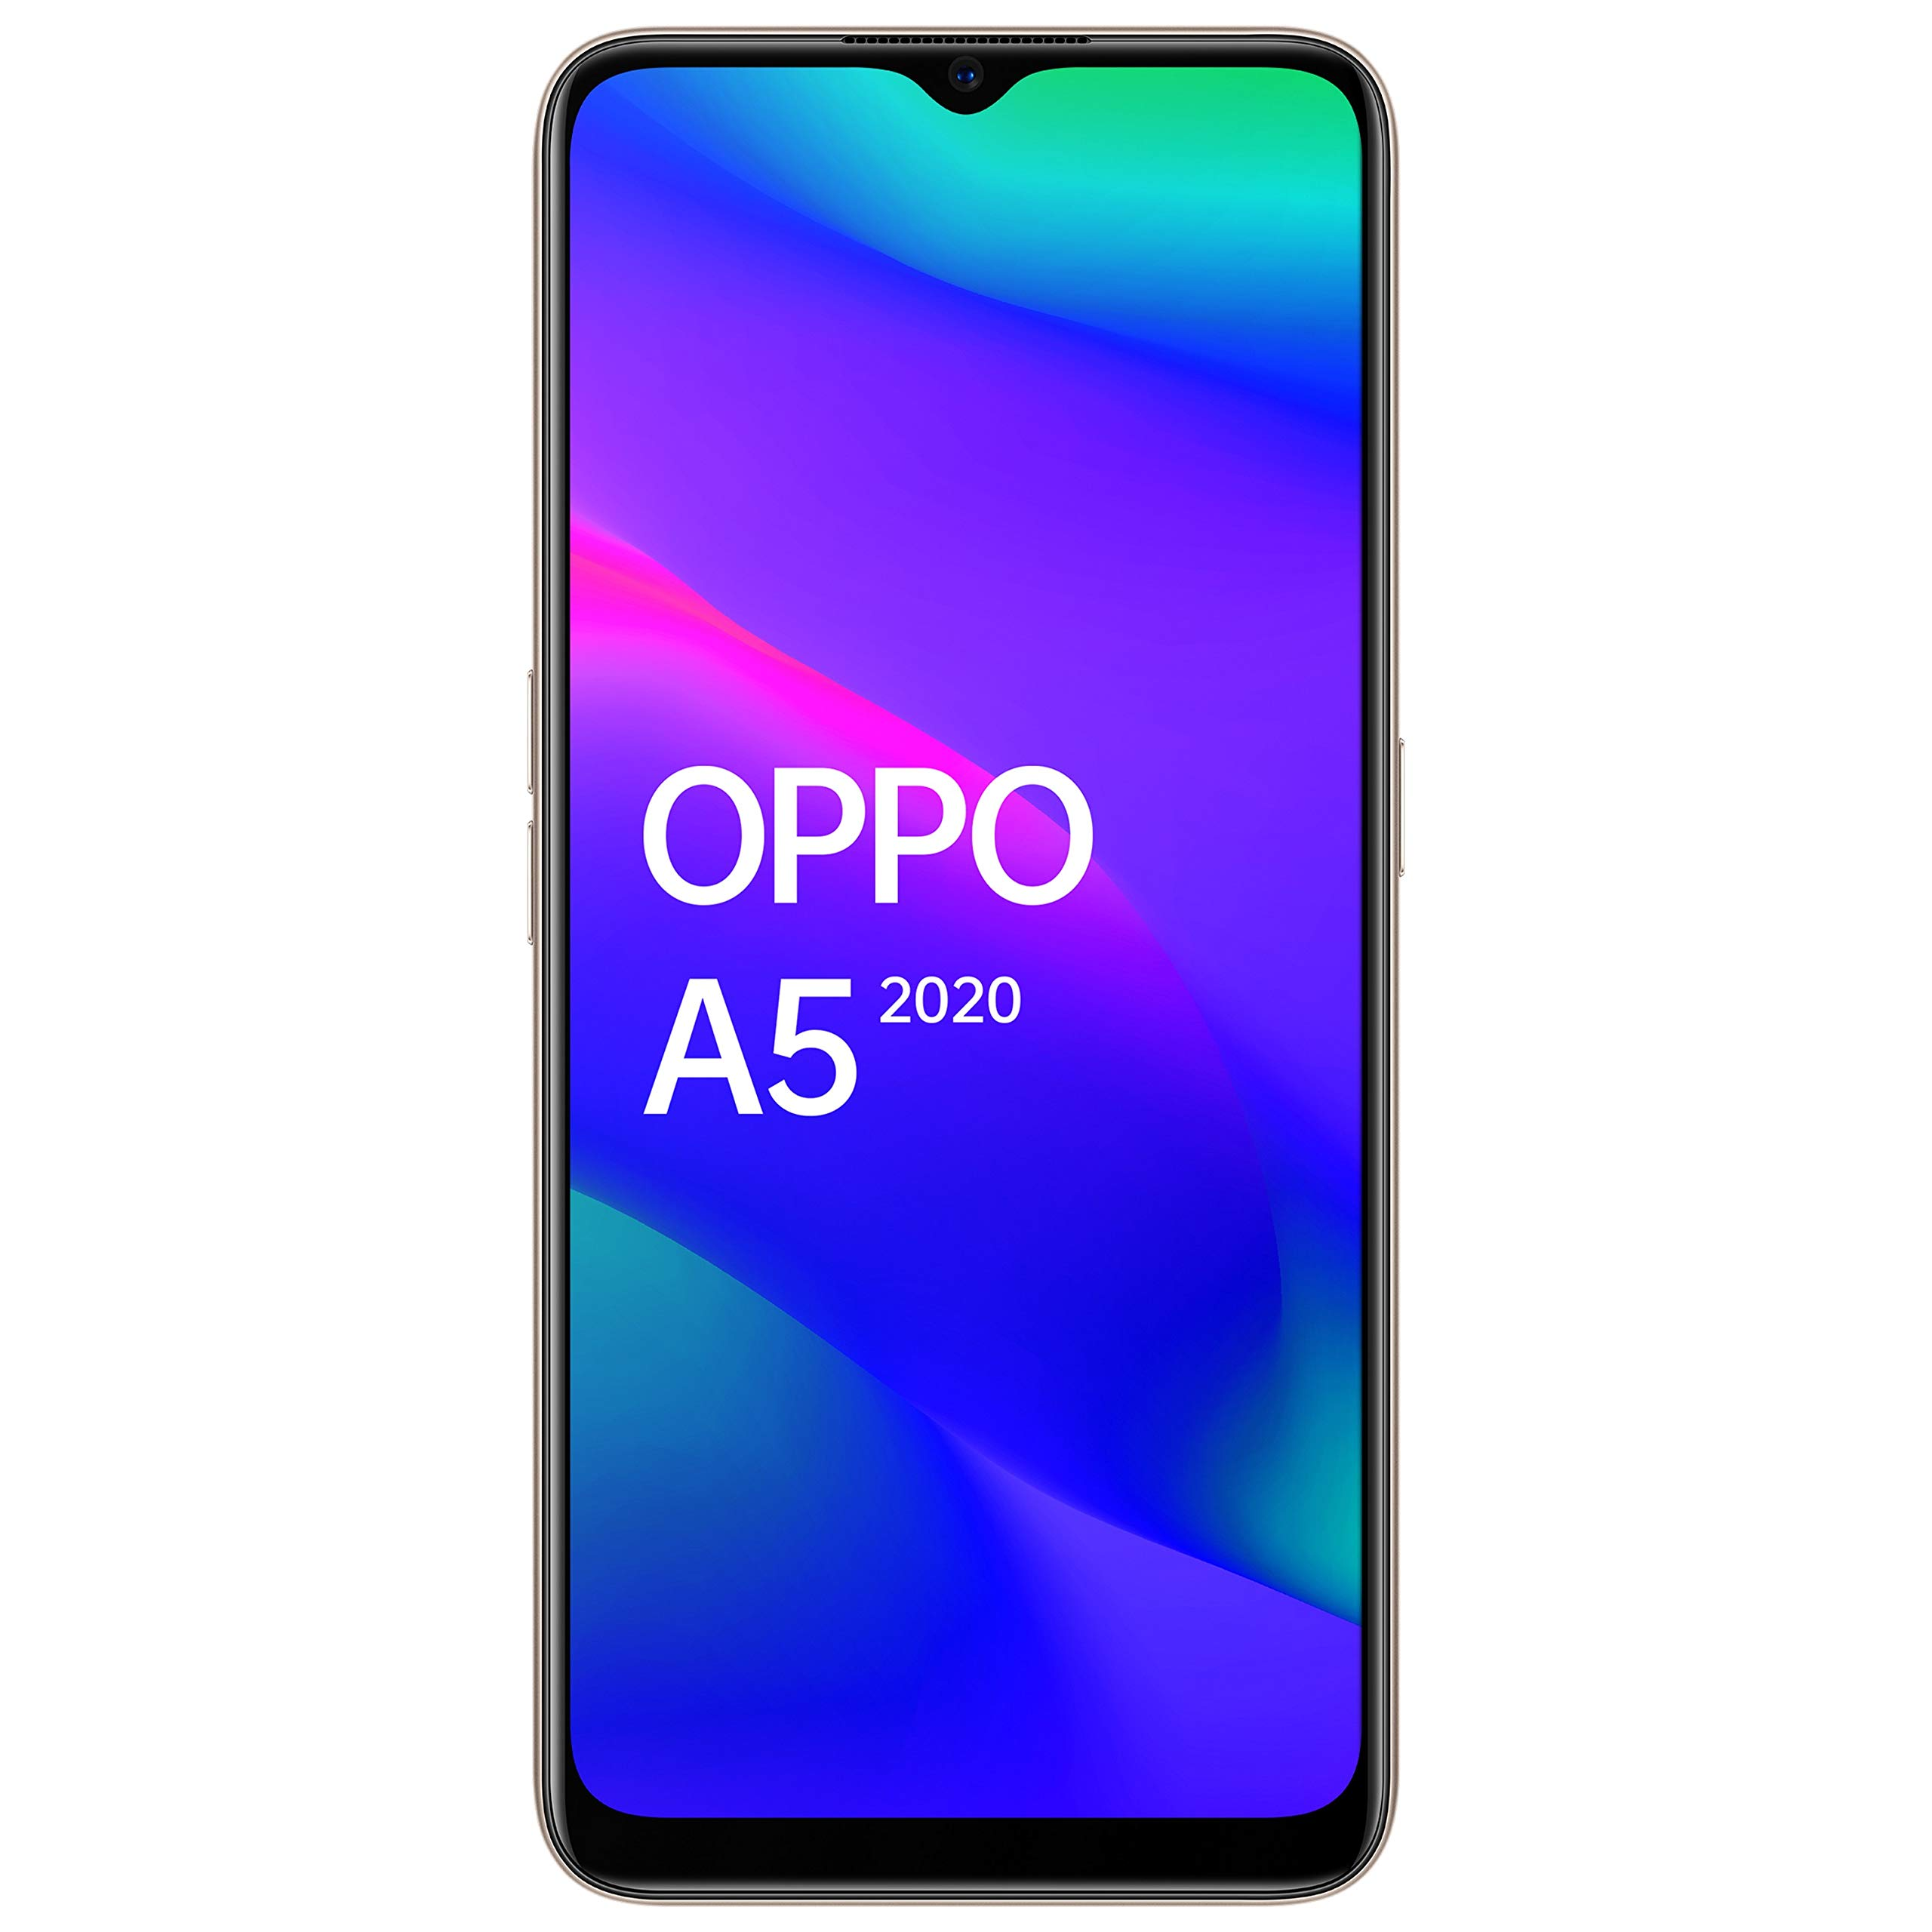 OPPO A52020